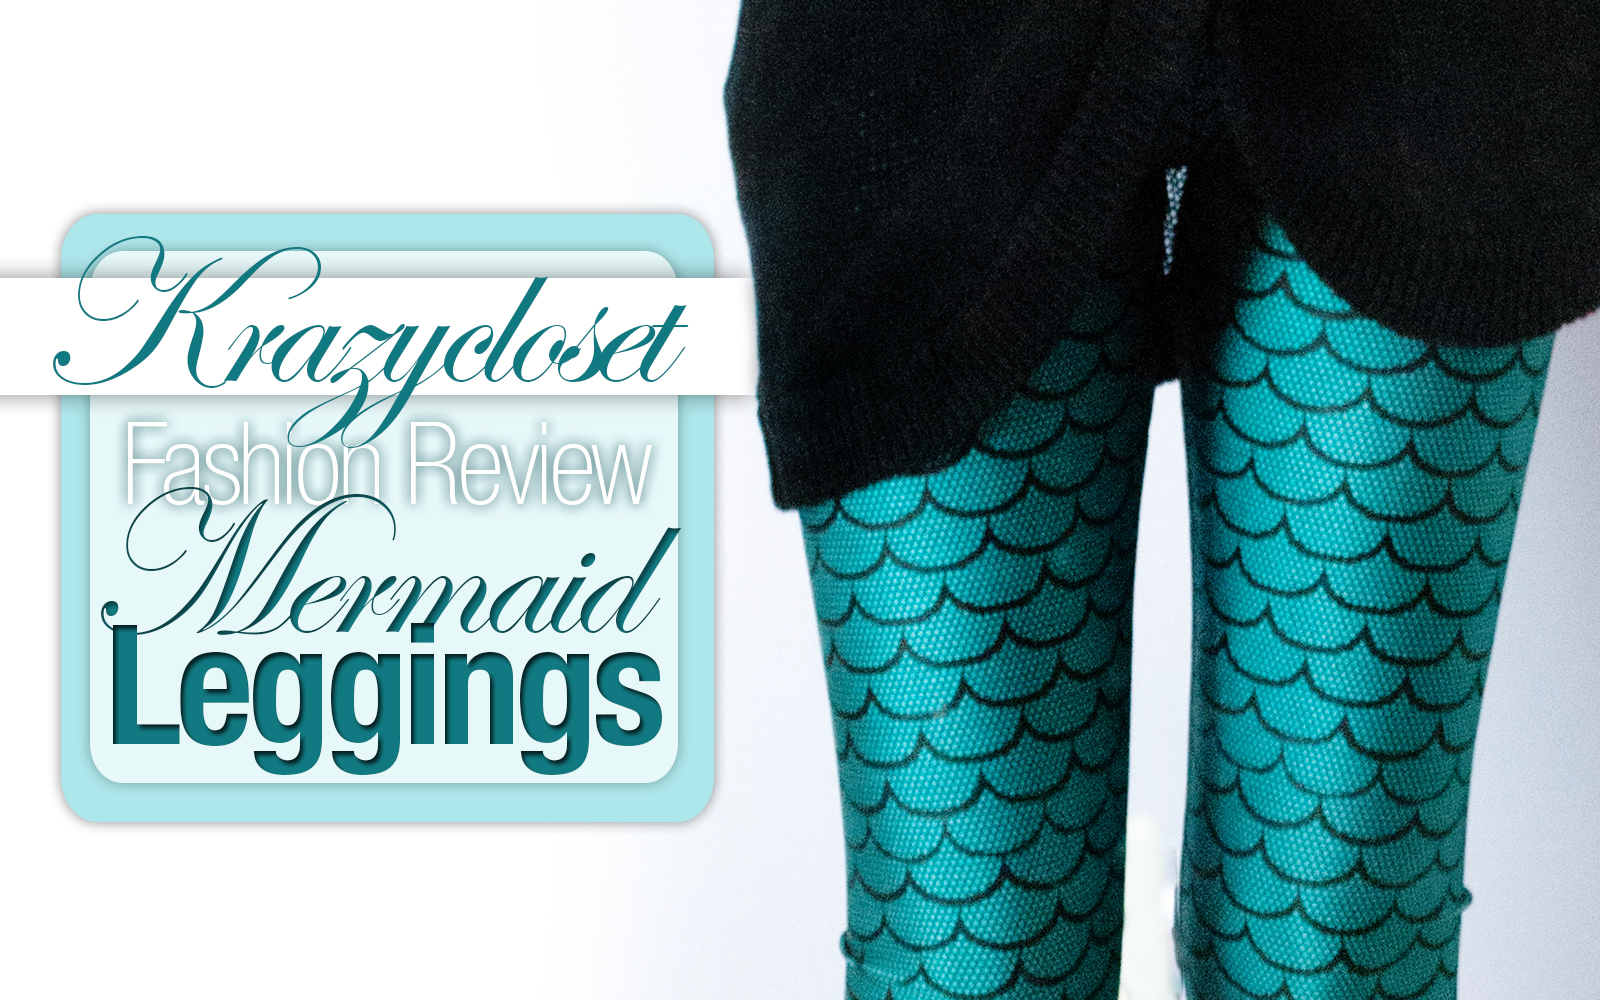 bbb1ae616 Intro photo for the review of the Mermaid Leggings from Krazycloset  Clothing, previously Vanity Treasures